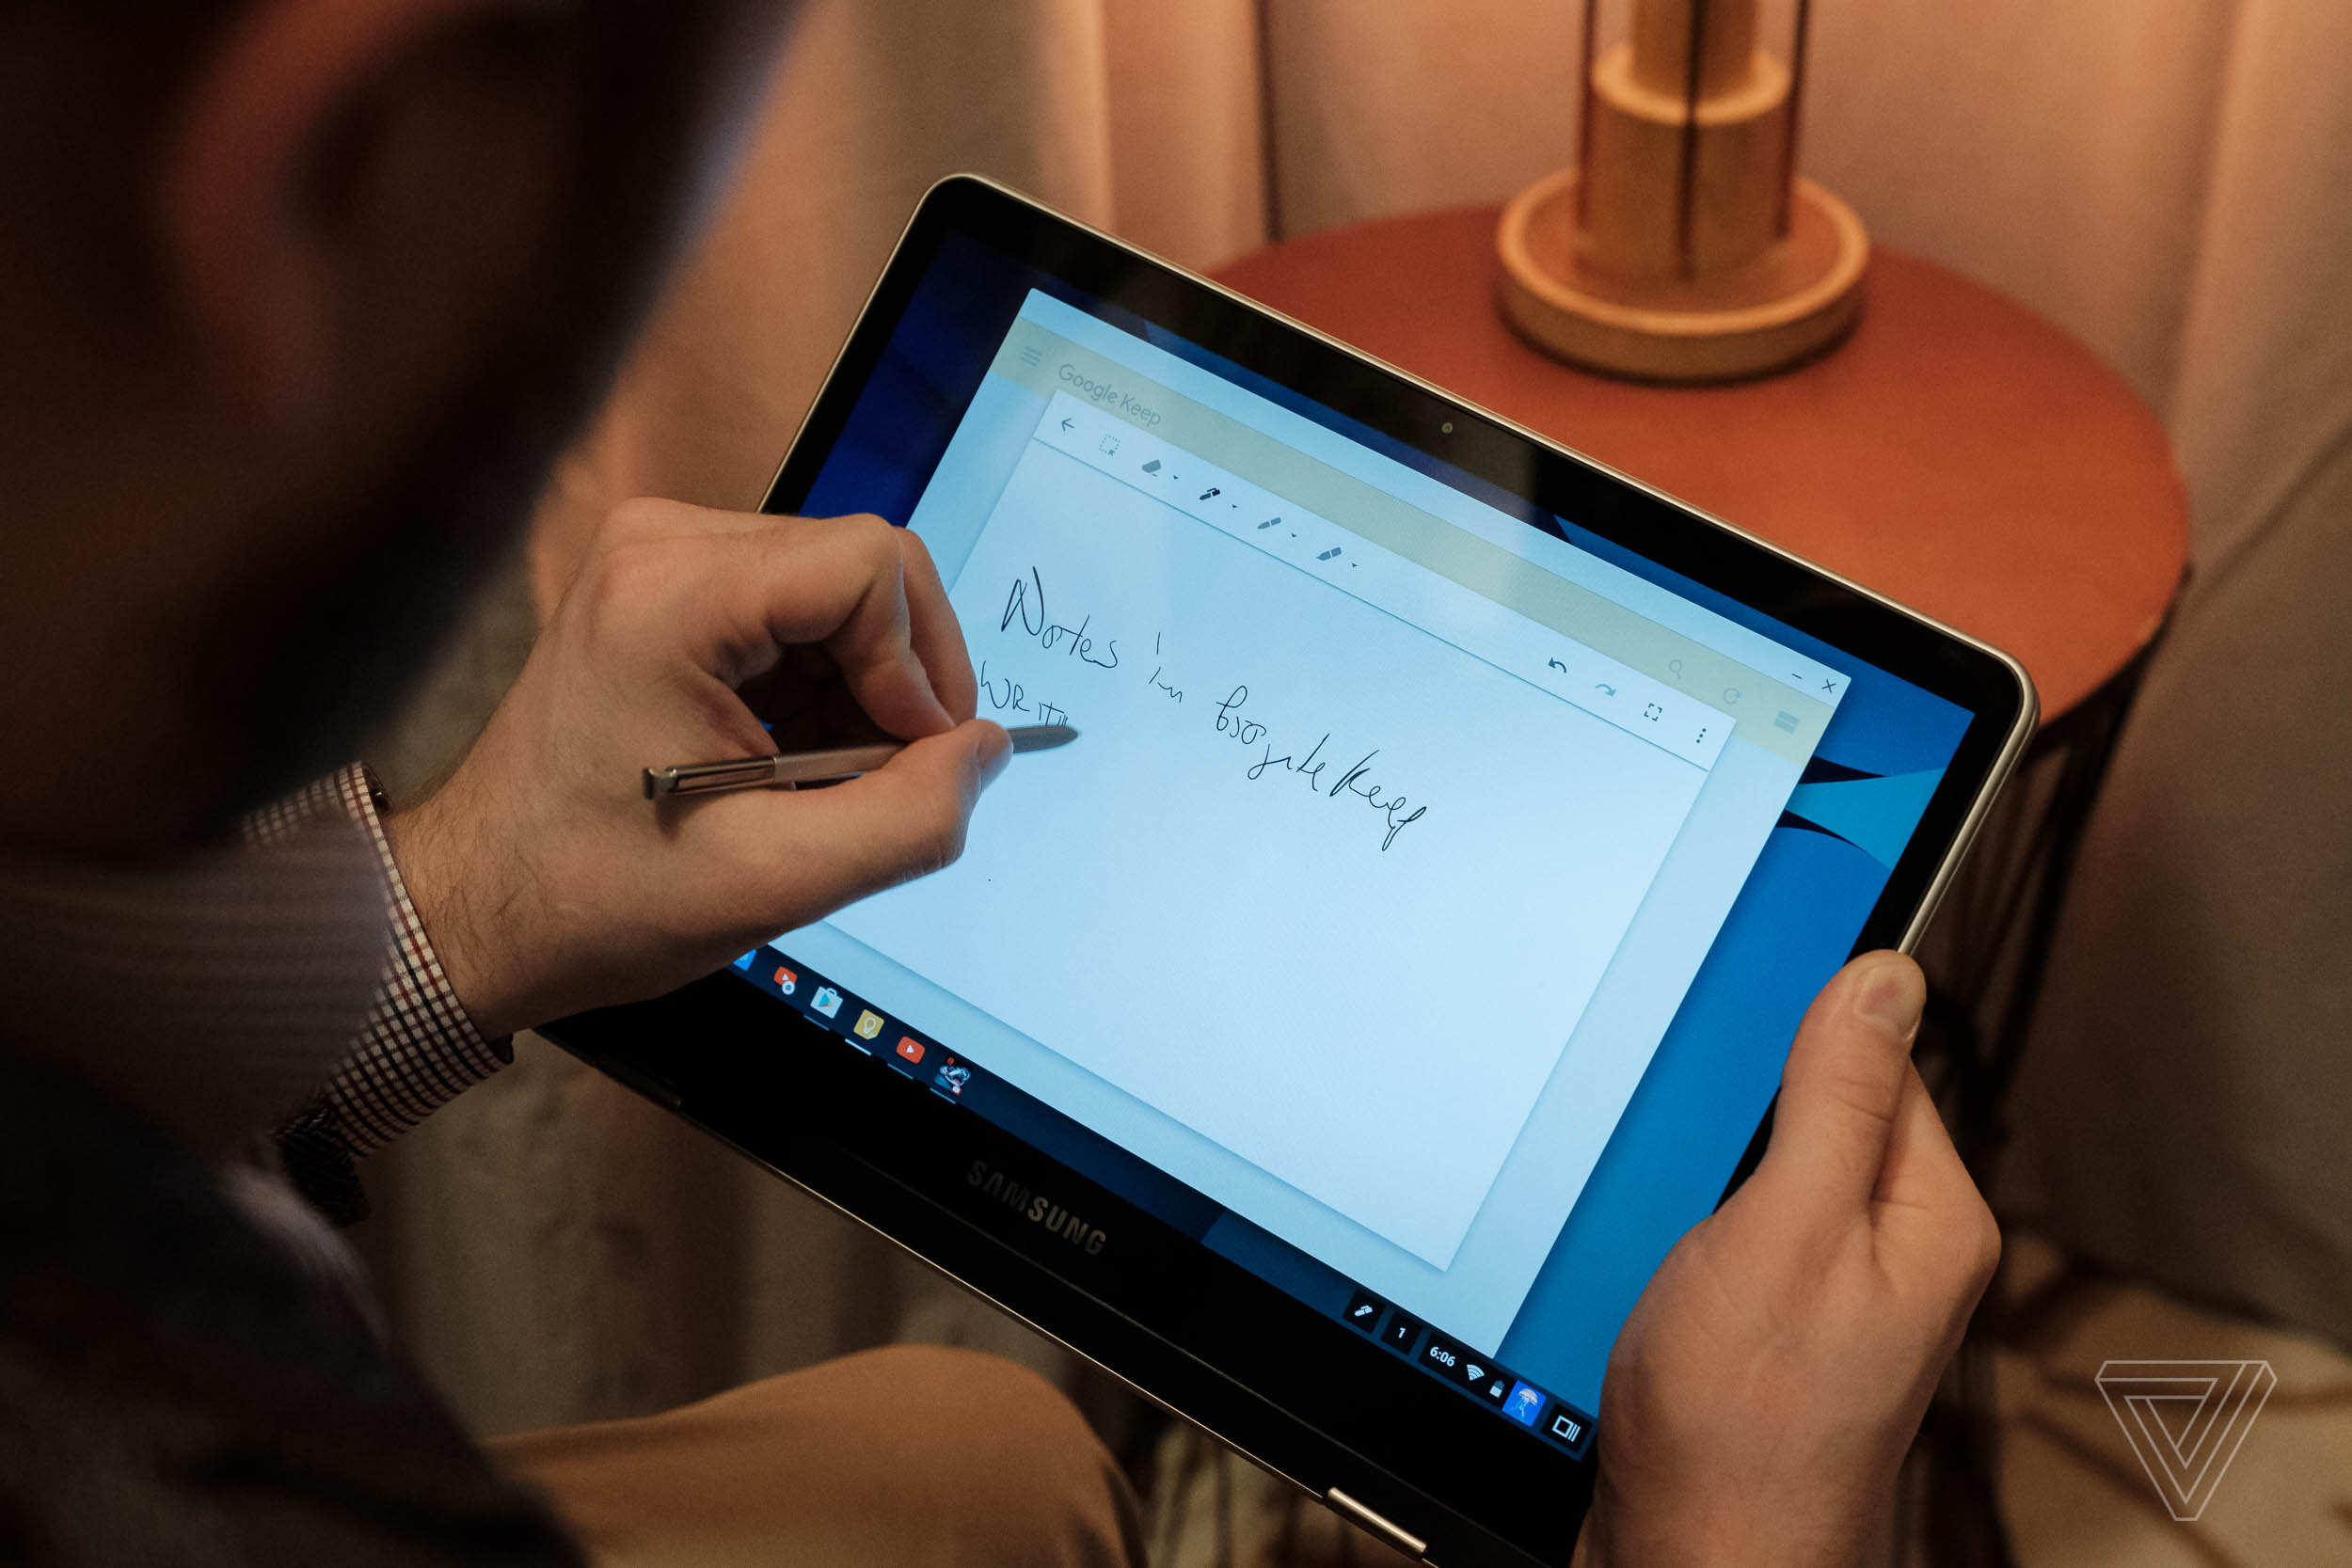 Samsungs New Chromebooks Are Googles Answer To The Ipad Pro And Touchscreen Mini 1 2 Dengan Fleksibel Black Surface Verge